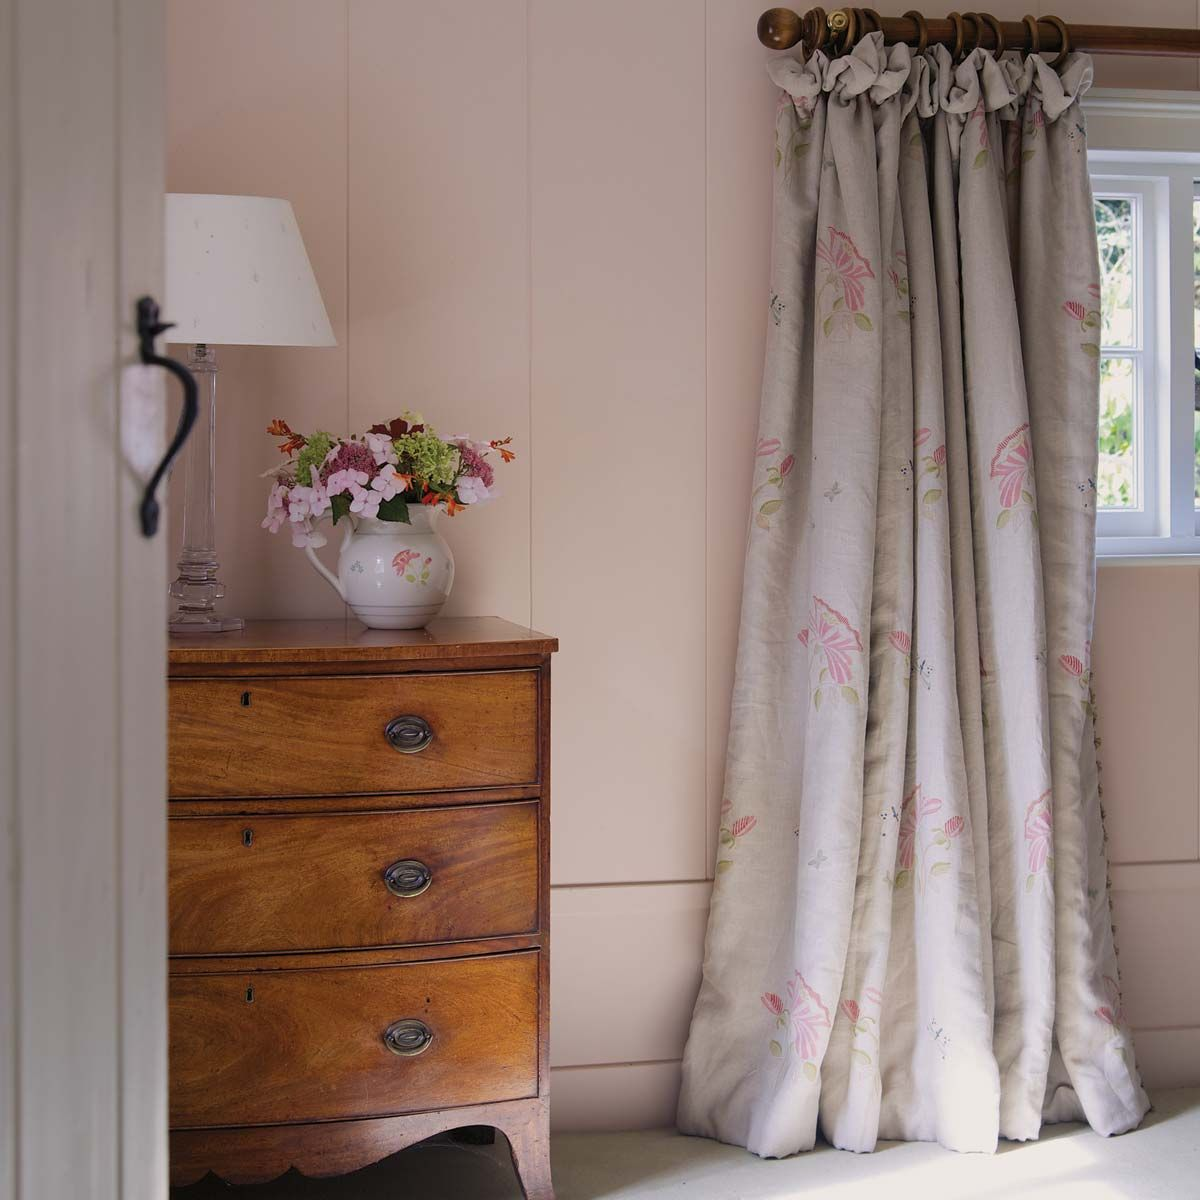 Fabric linenpink rose susie watson designs curtains